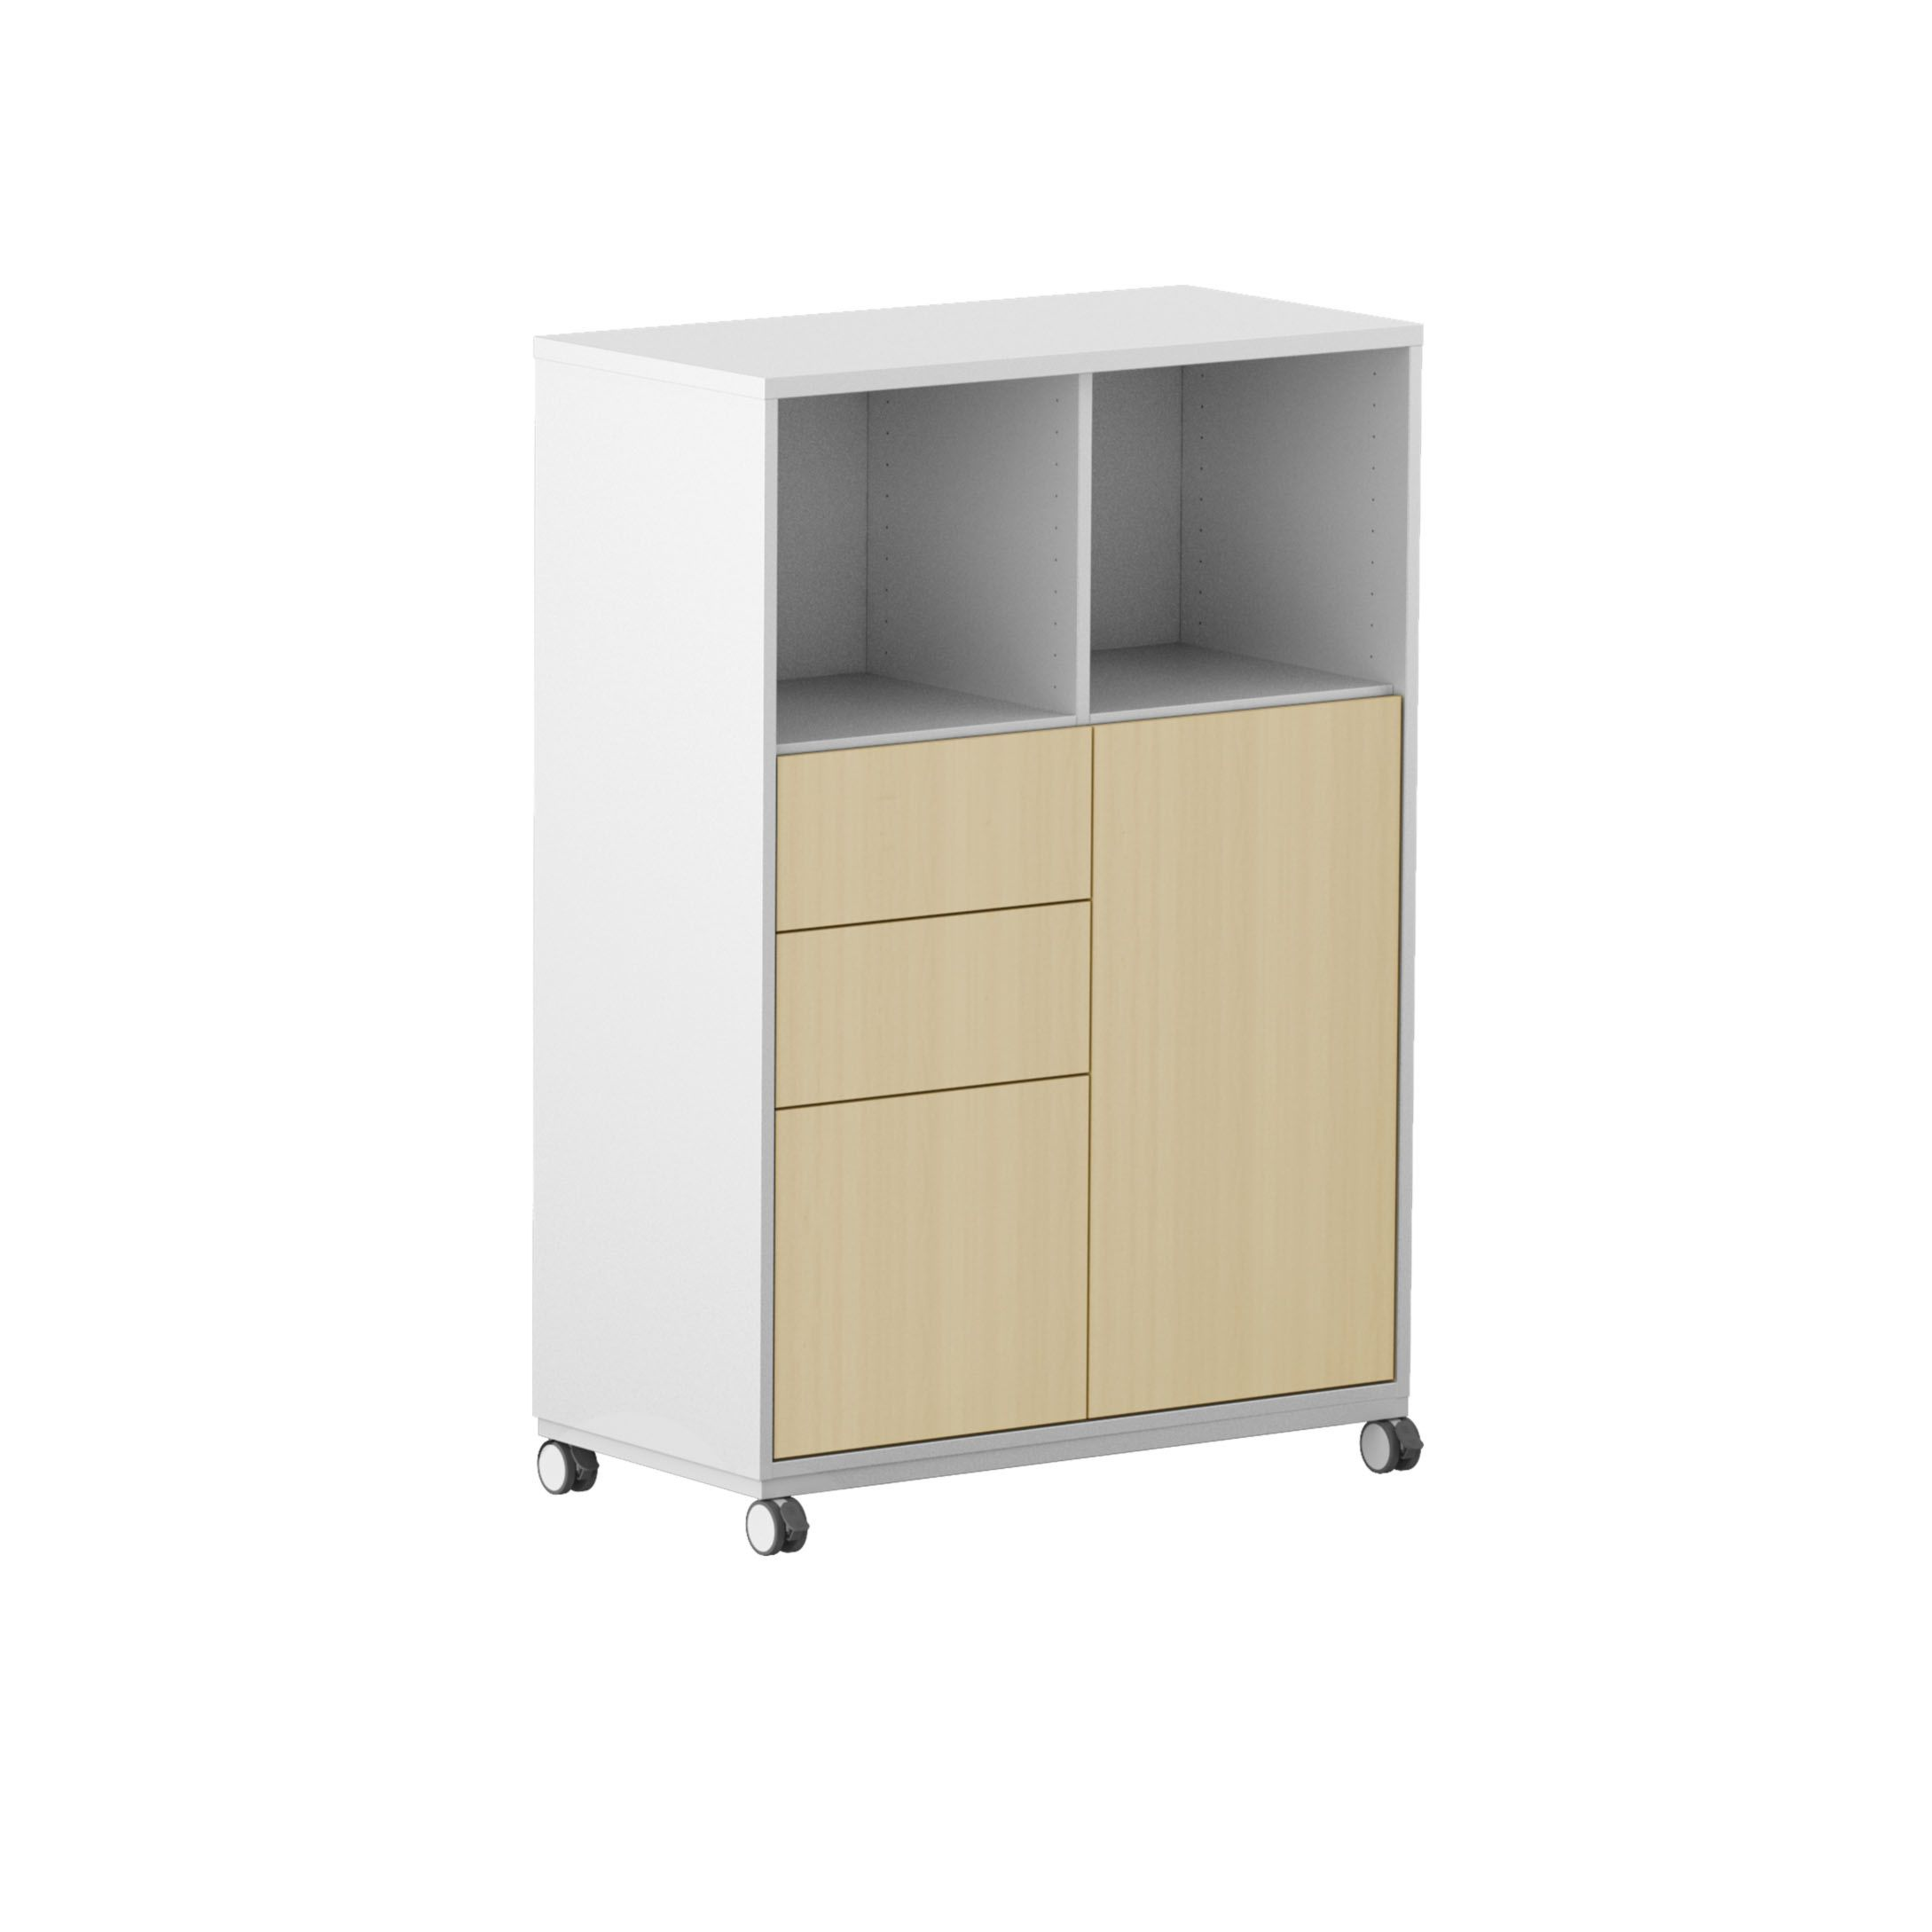 Pulse Storage with doors and drawers product image 3